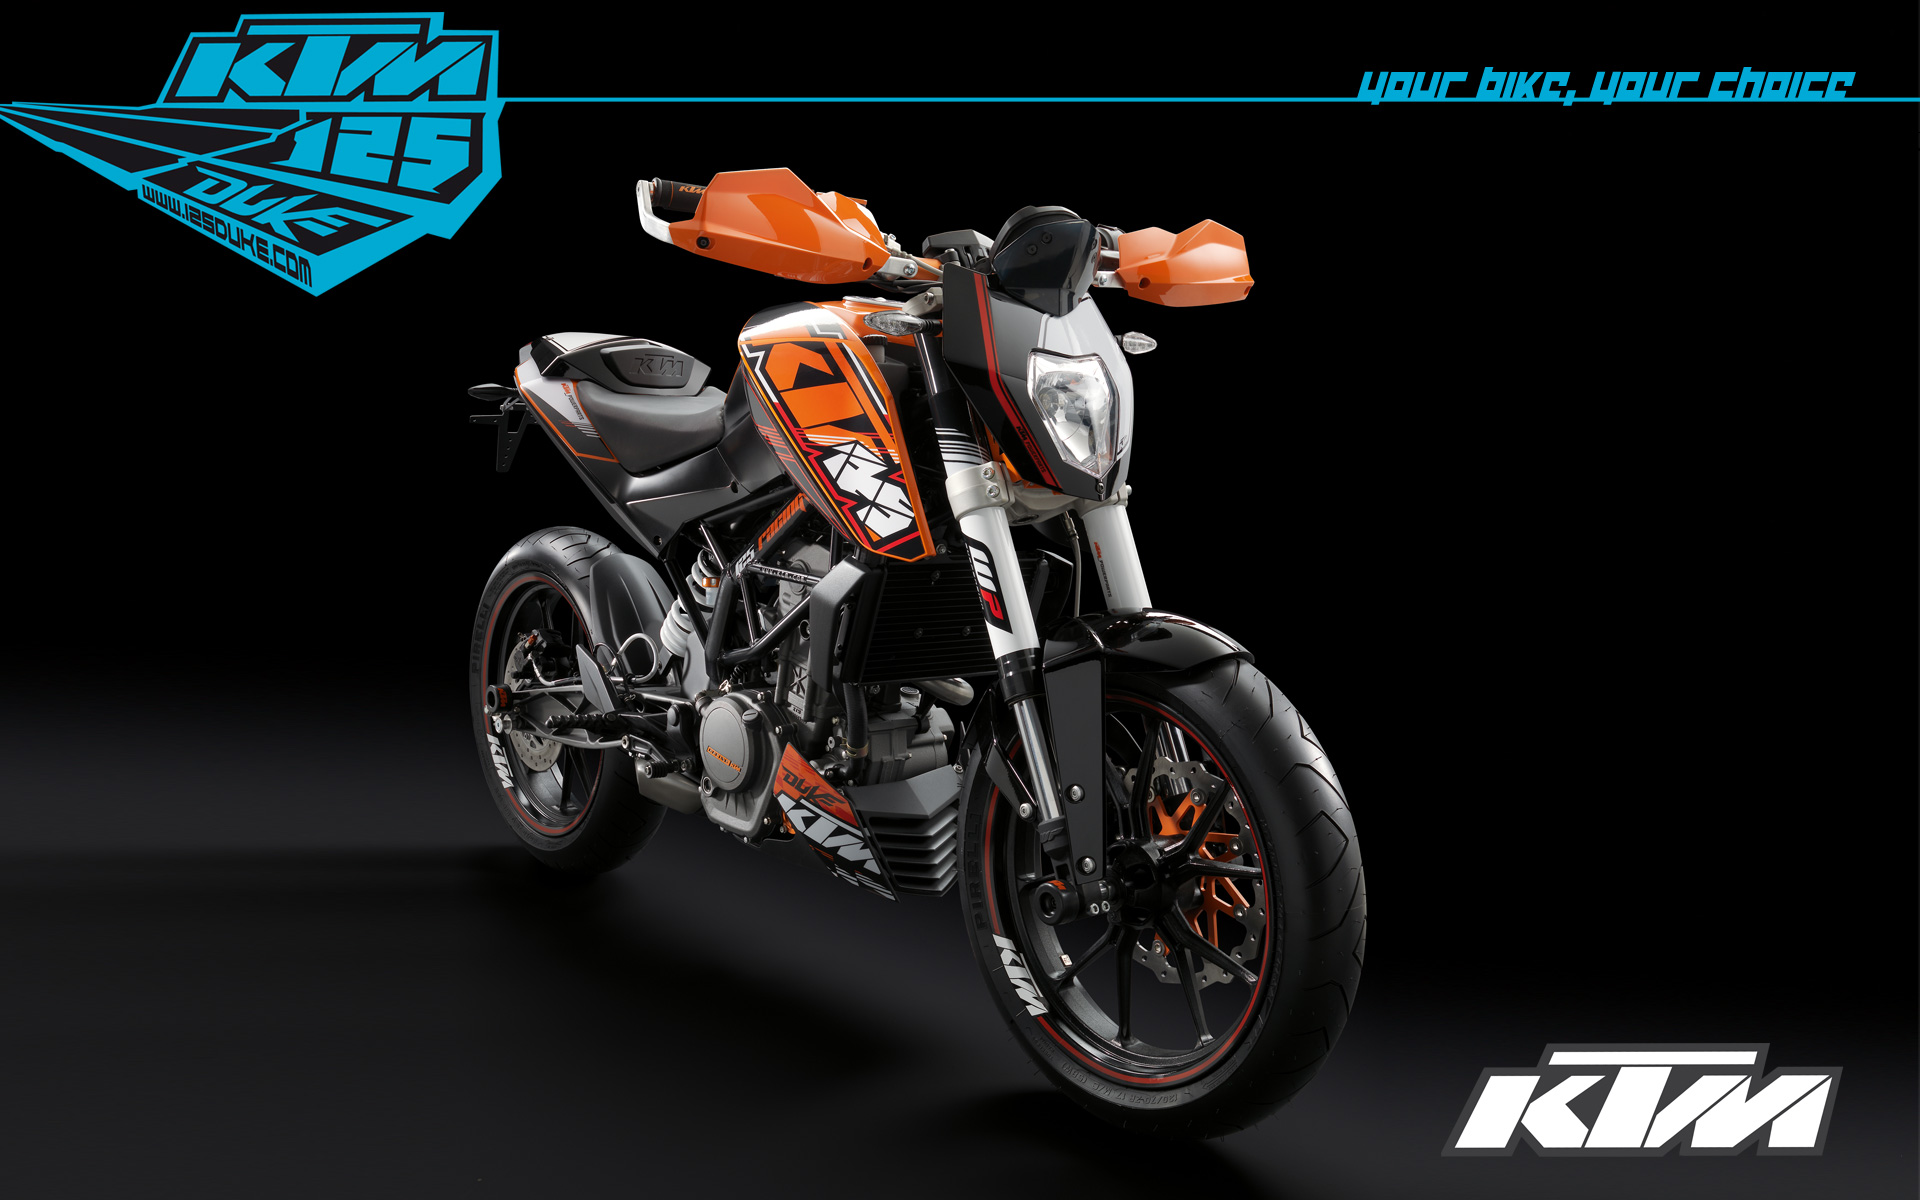 Duke 390 2017 Wallpaper Hd Ktm Modellnews